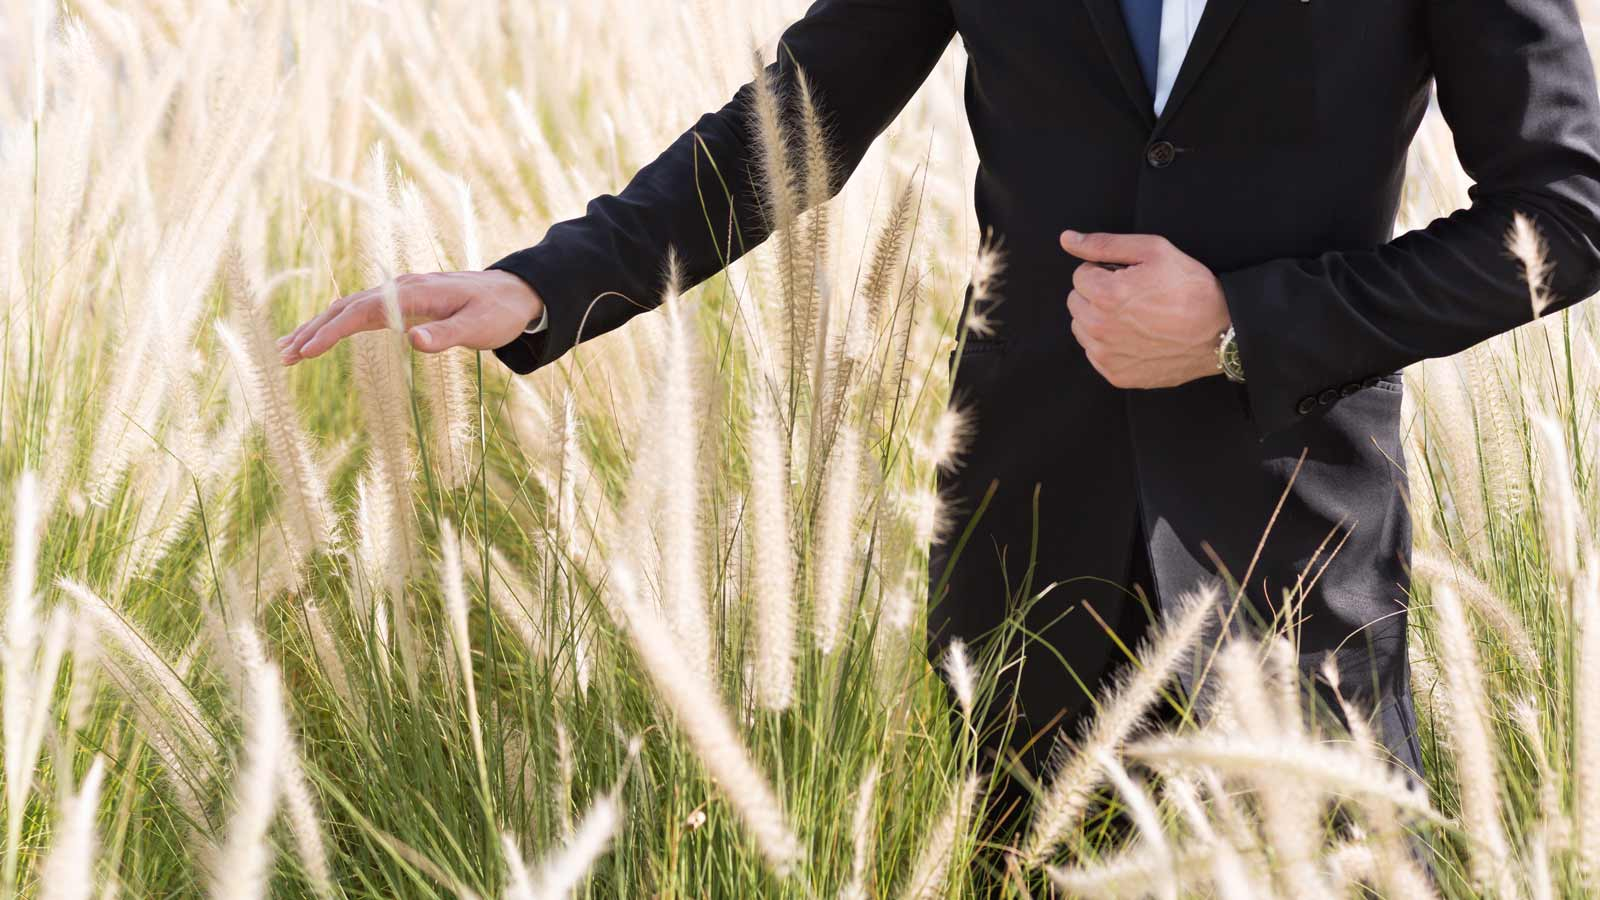 businessman walking through field of wheat and stroking it with his hand